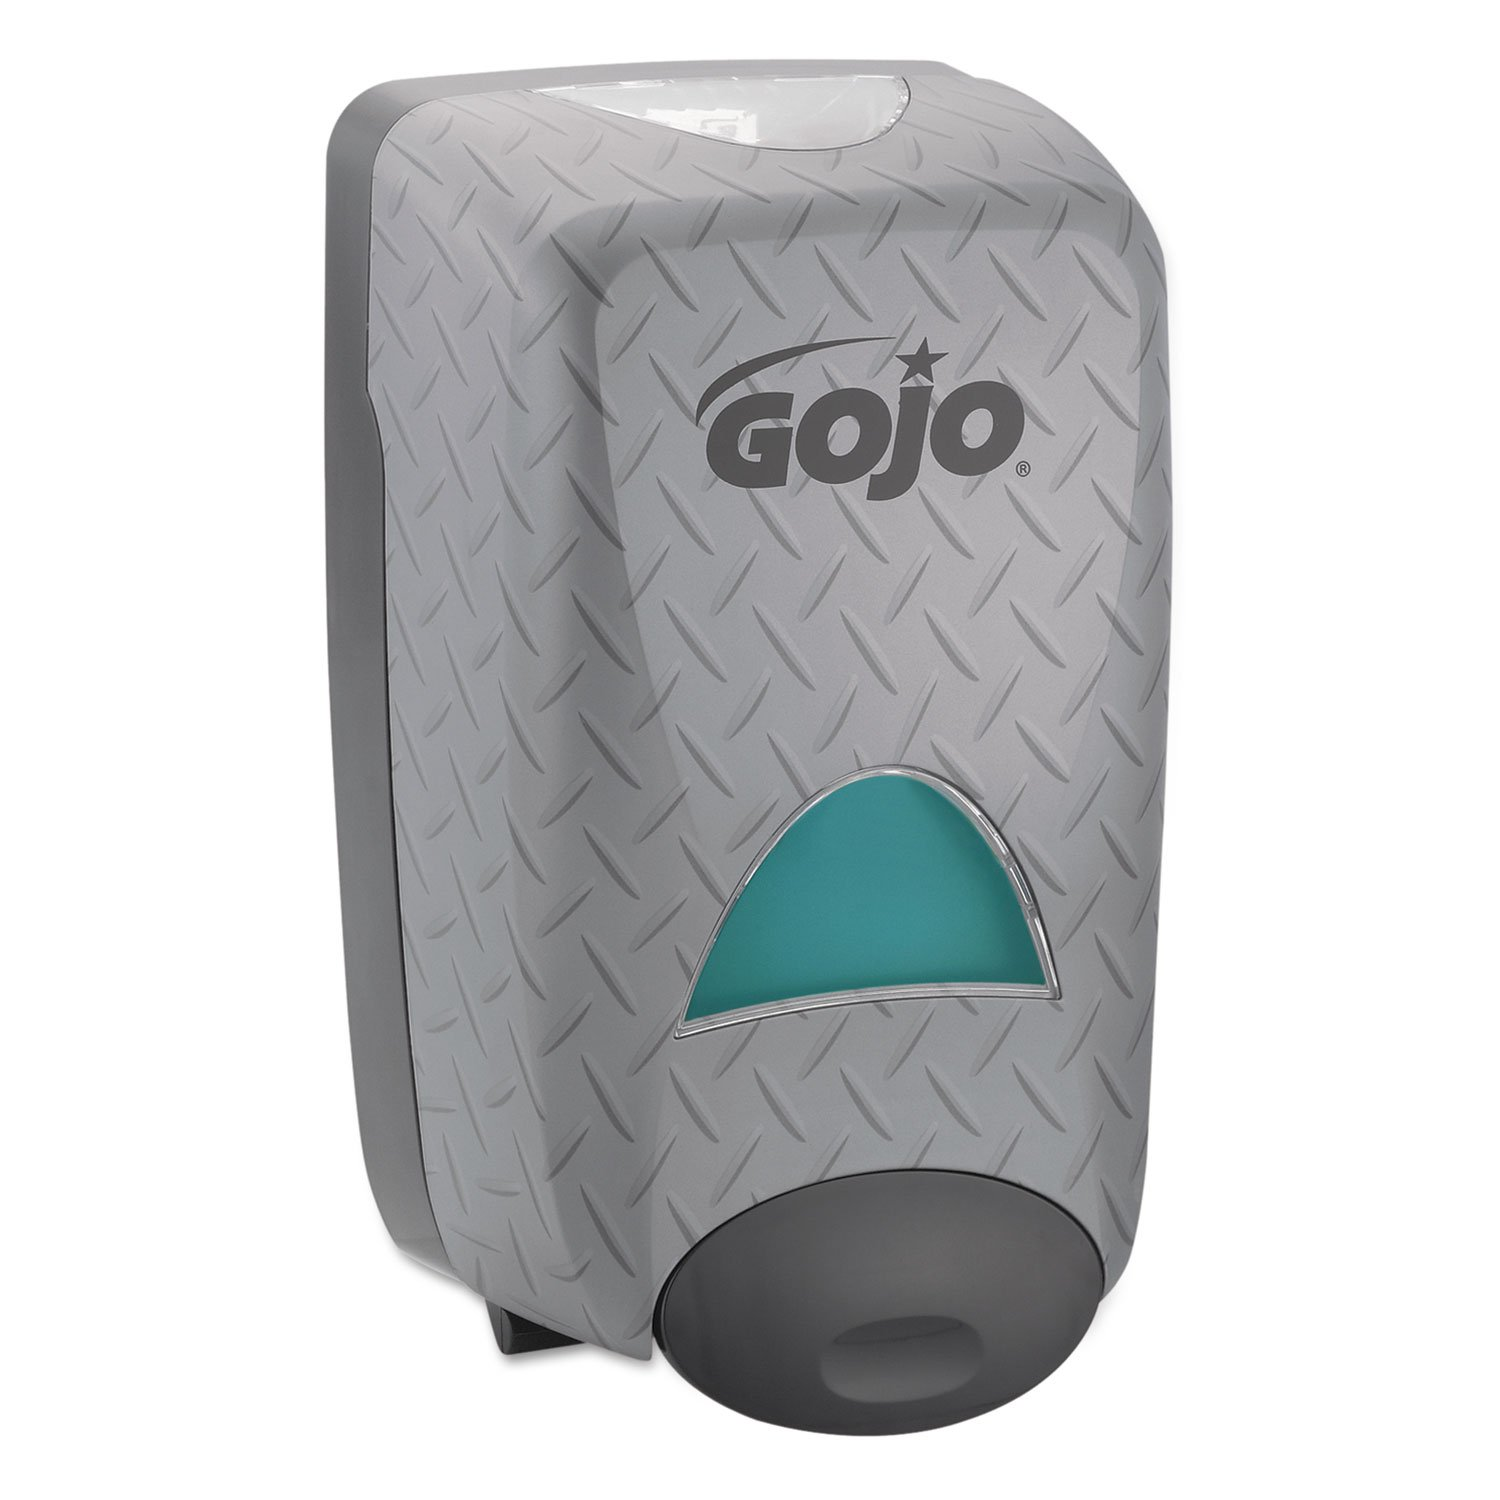 GOJ525406CT - DPX Dispenser by Gojo